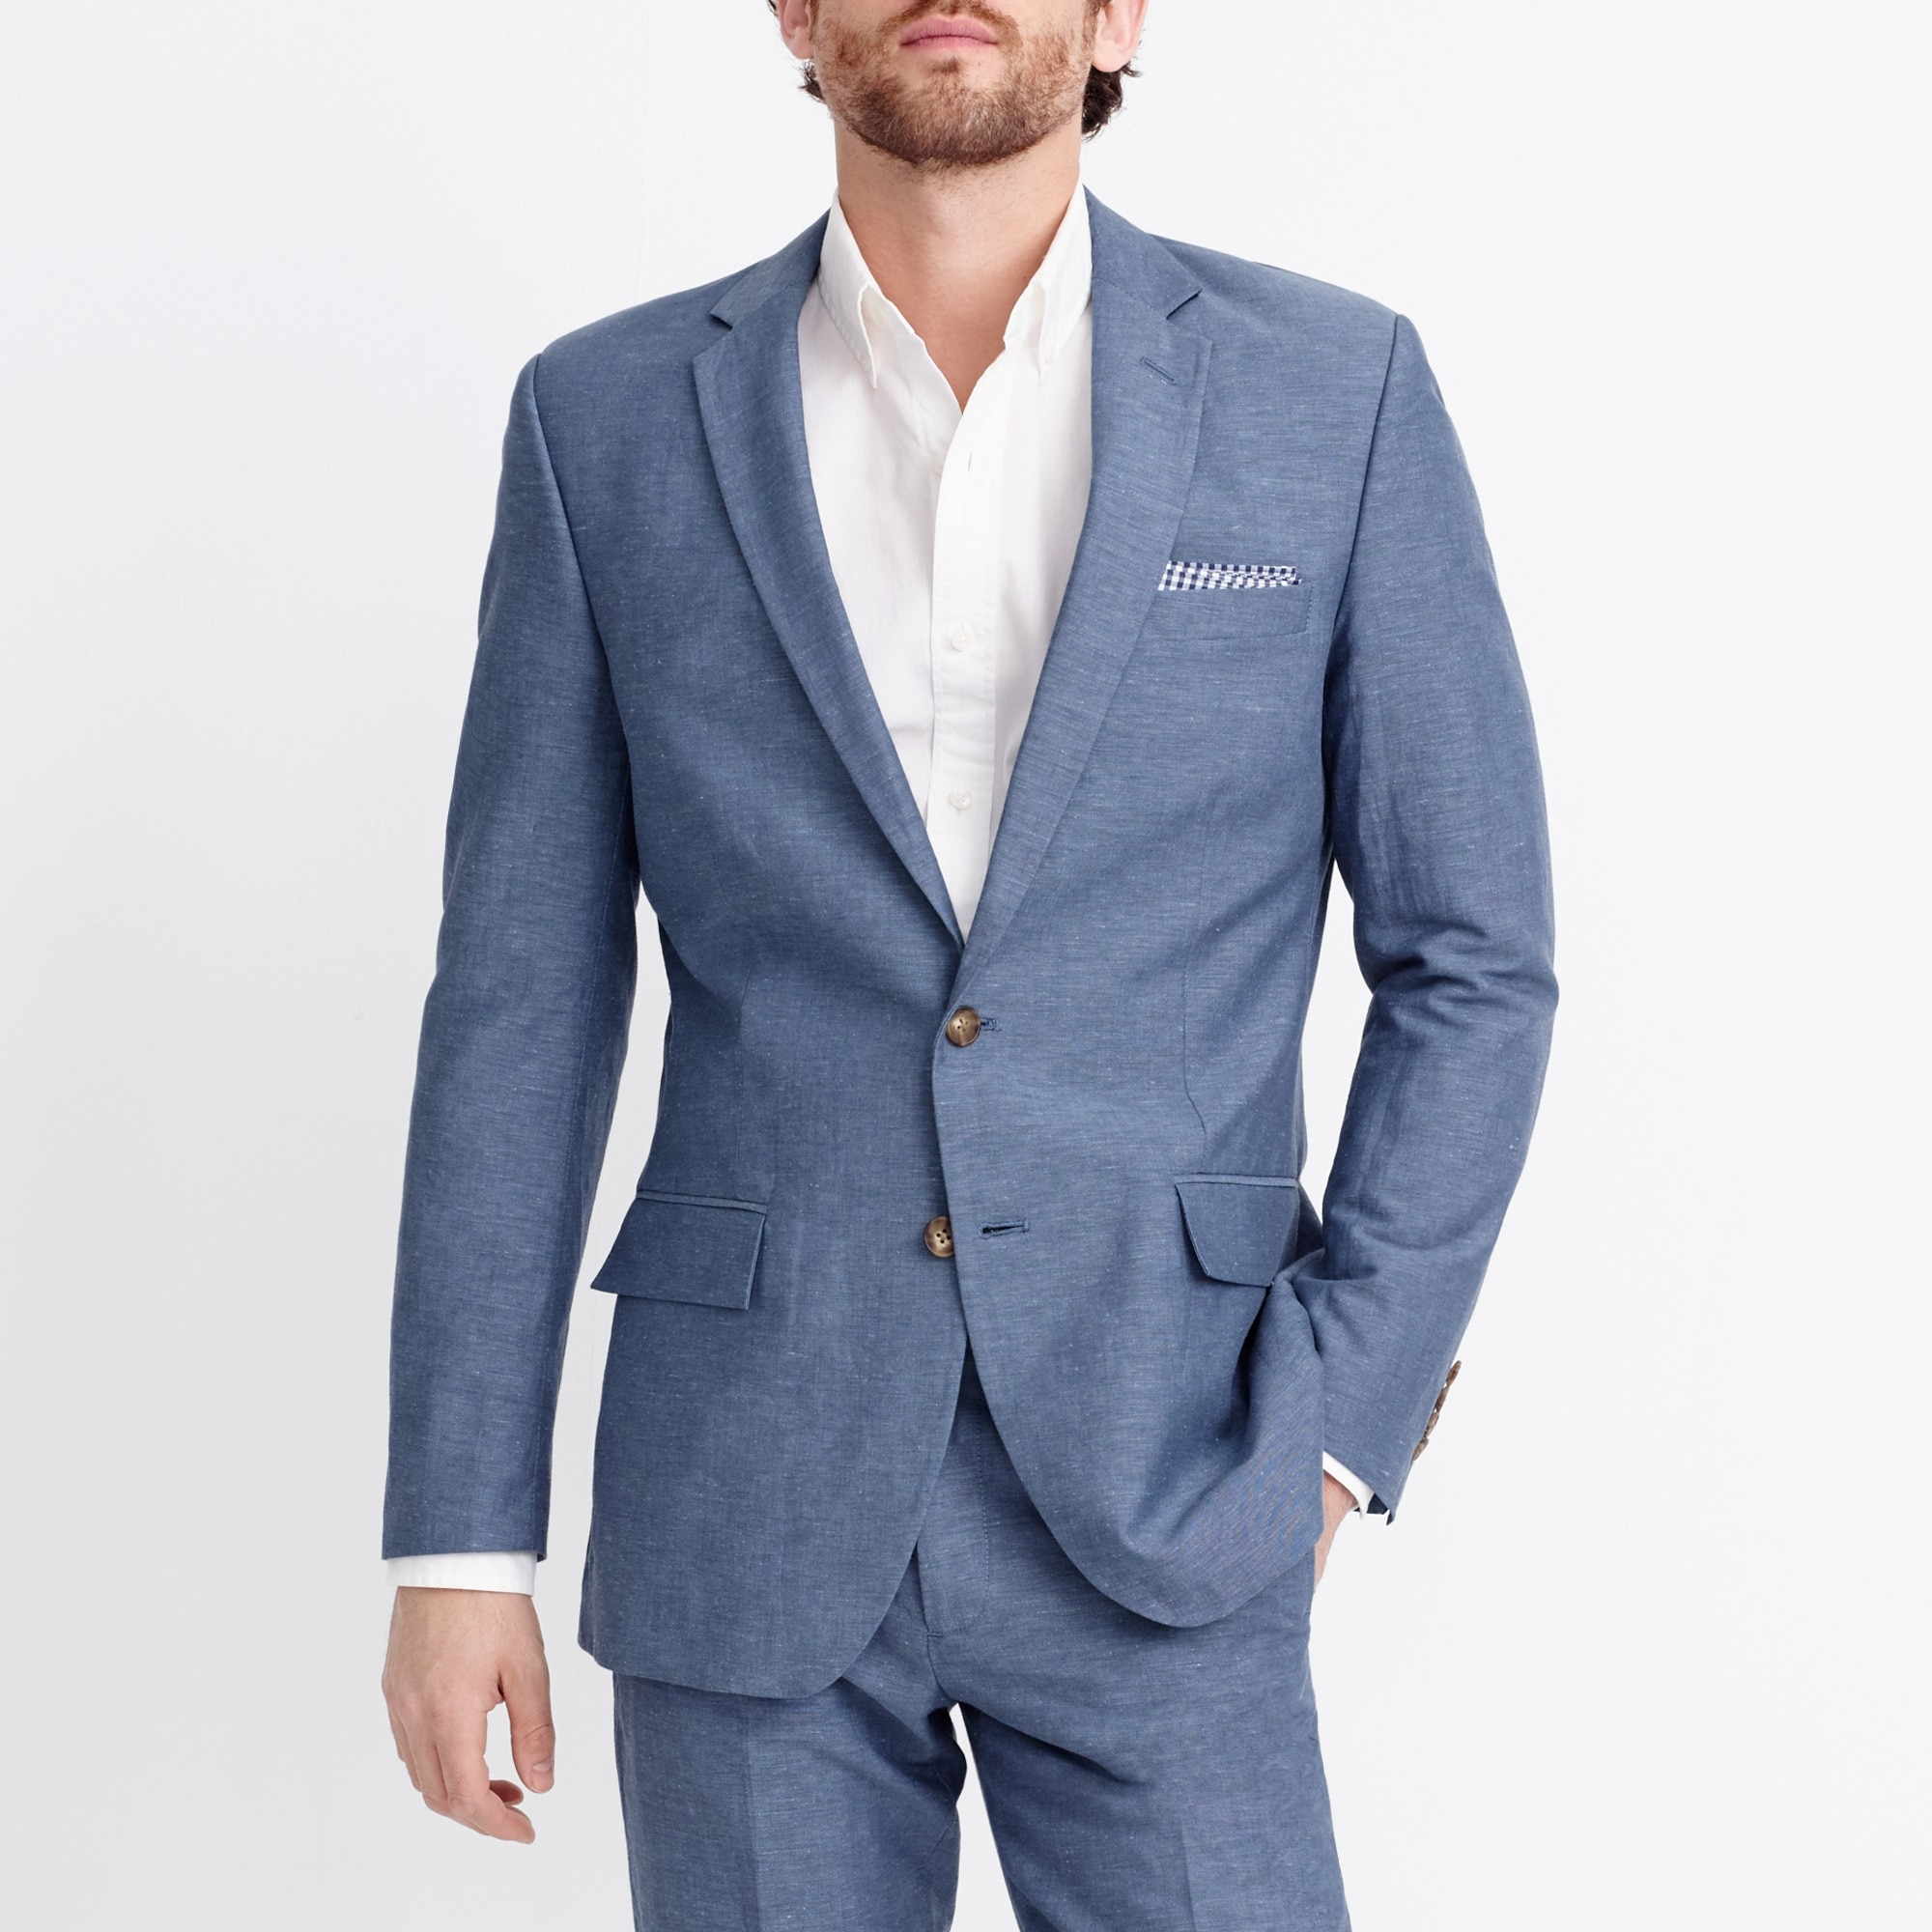 thompson suit jacket in slub linen : factorymen blazers